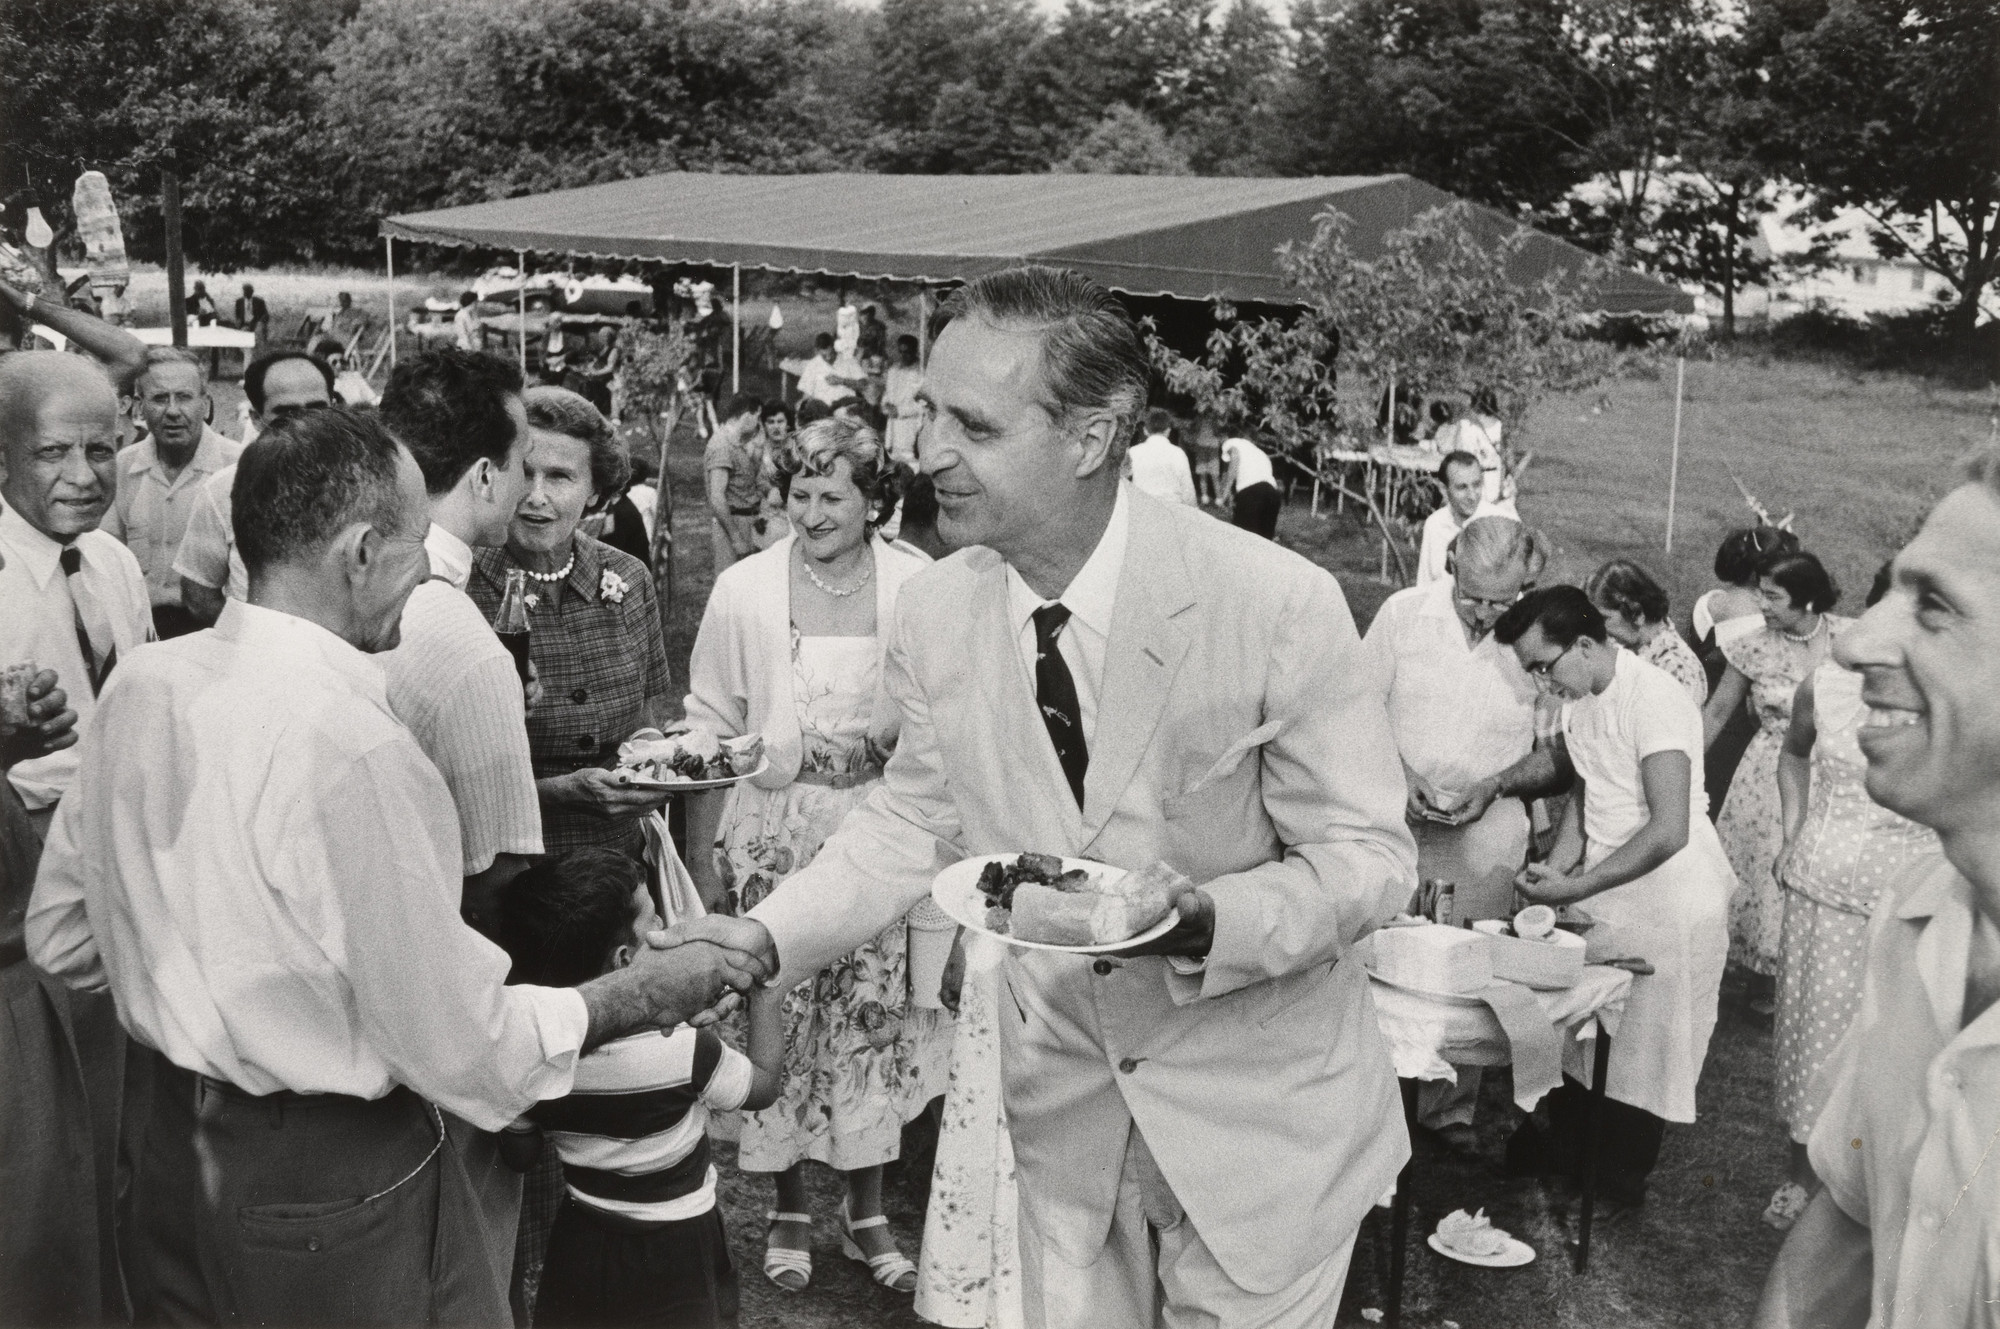 Dan Weiner. Prescott Bush Campaigning for Senator, Connecticut. 1956